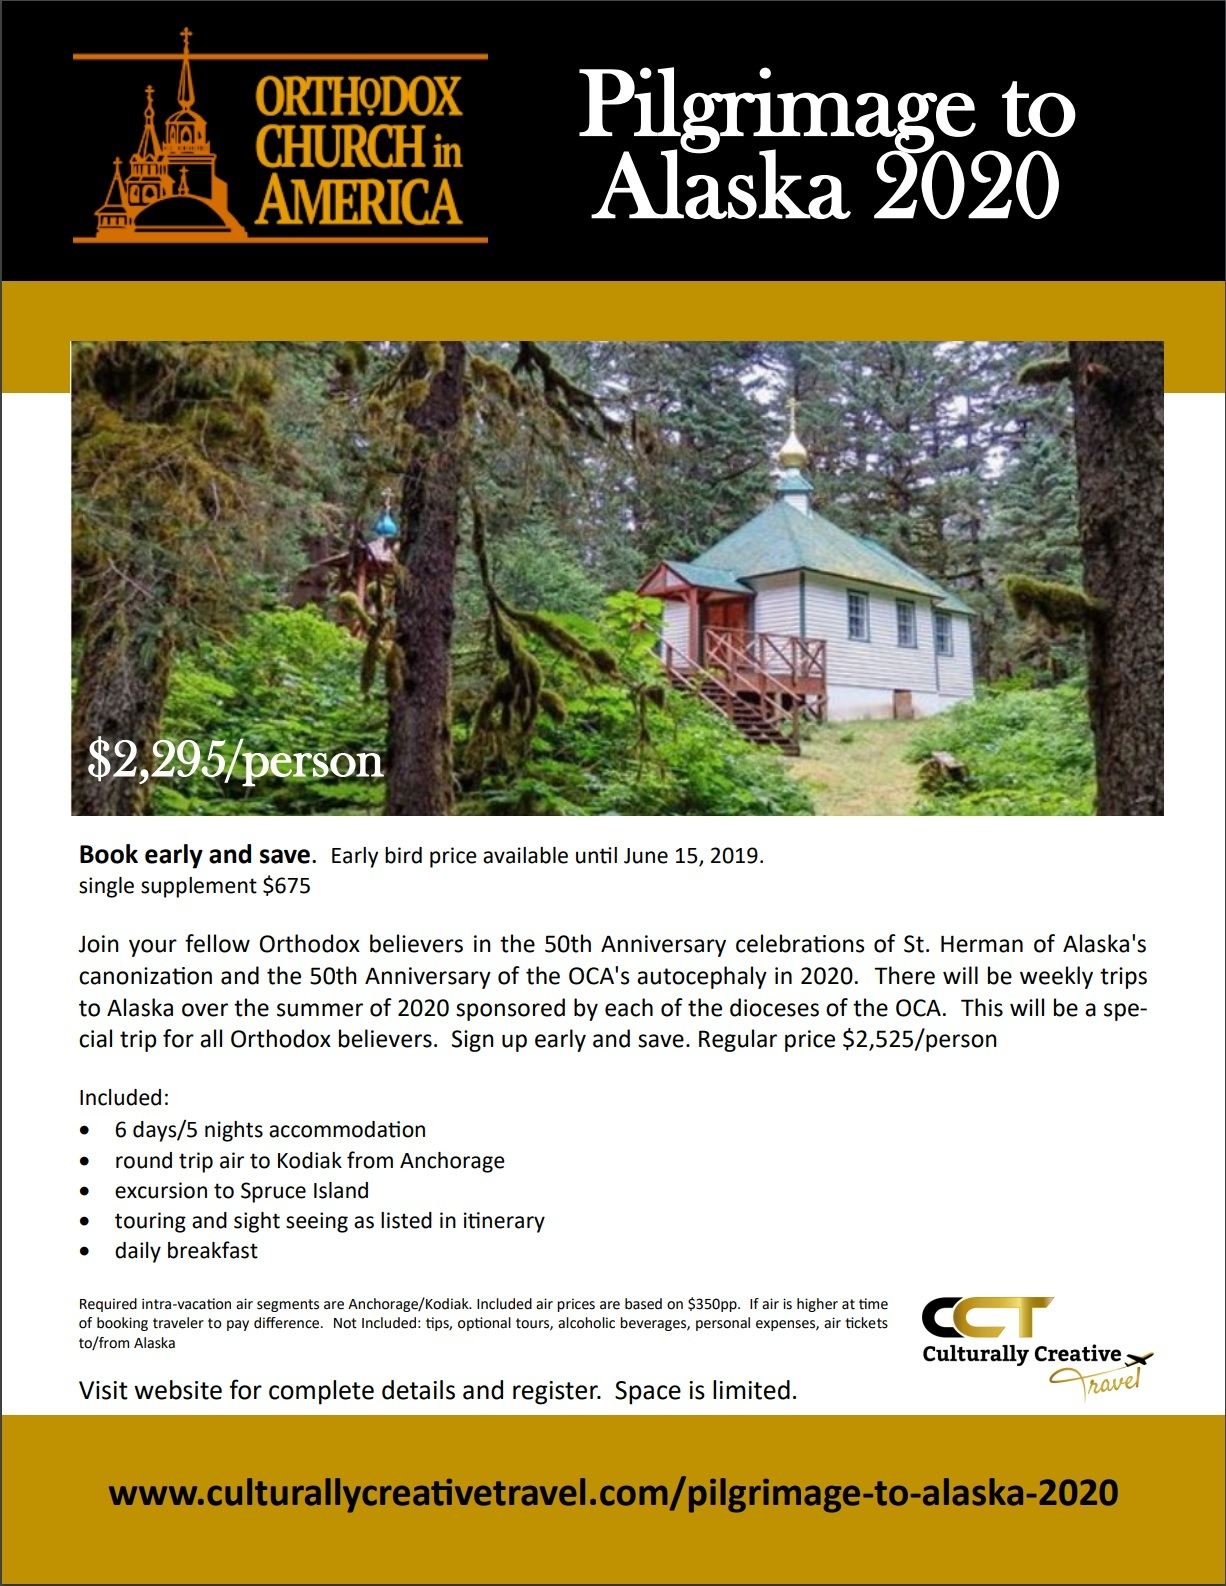 eebe9ff5f6c50 50th Anniversary celebrations of St. Herman of Alaska s glorification and  the 50th Anniversary of the OCA s autocephaly in 2020